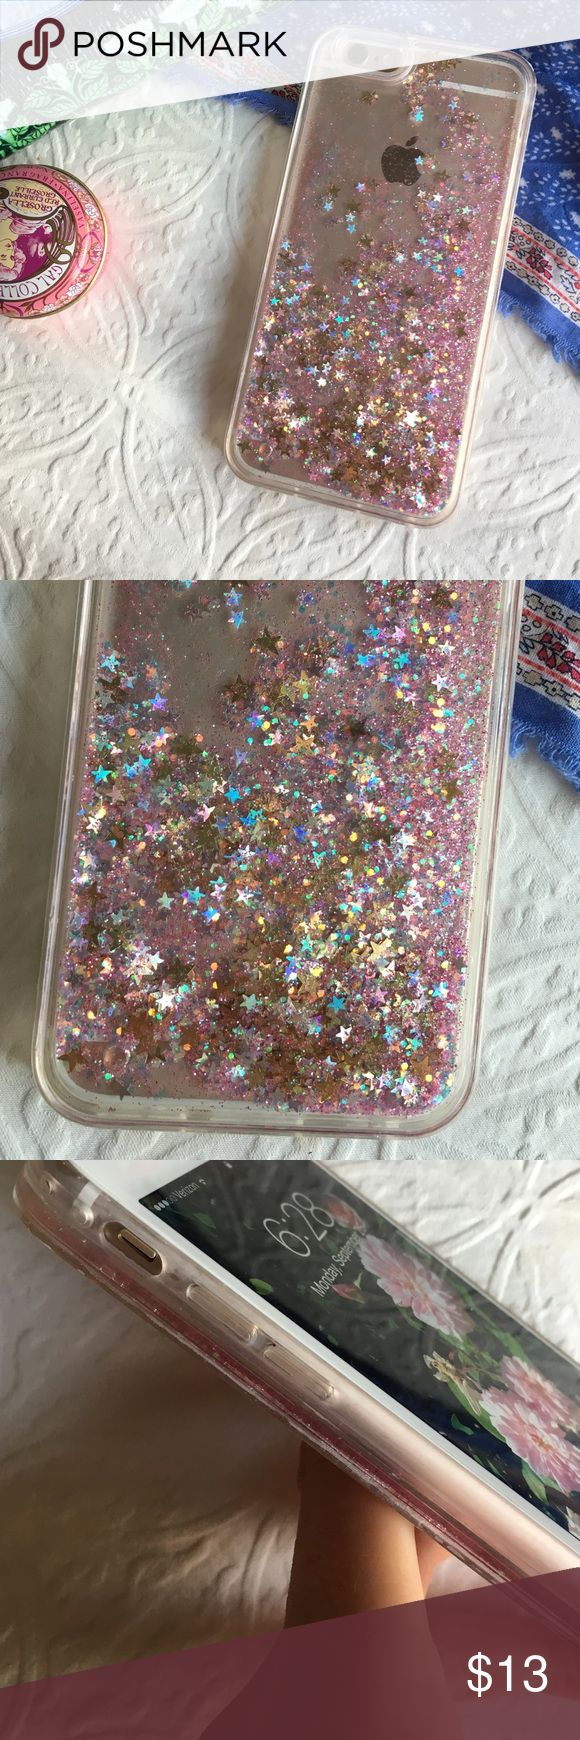 ⭐️glitter phone case⭐️ ✨brand new ✨pink and gold sparkle water case ✨for iphone 6/6s ✨protects back of phone from scratches ✨not from listed brand-only for exposure ✨no lowballing please ✨ships next day excluding sundays Make an offer! tags: sparkles, cot